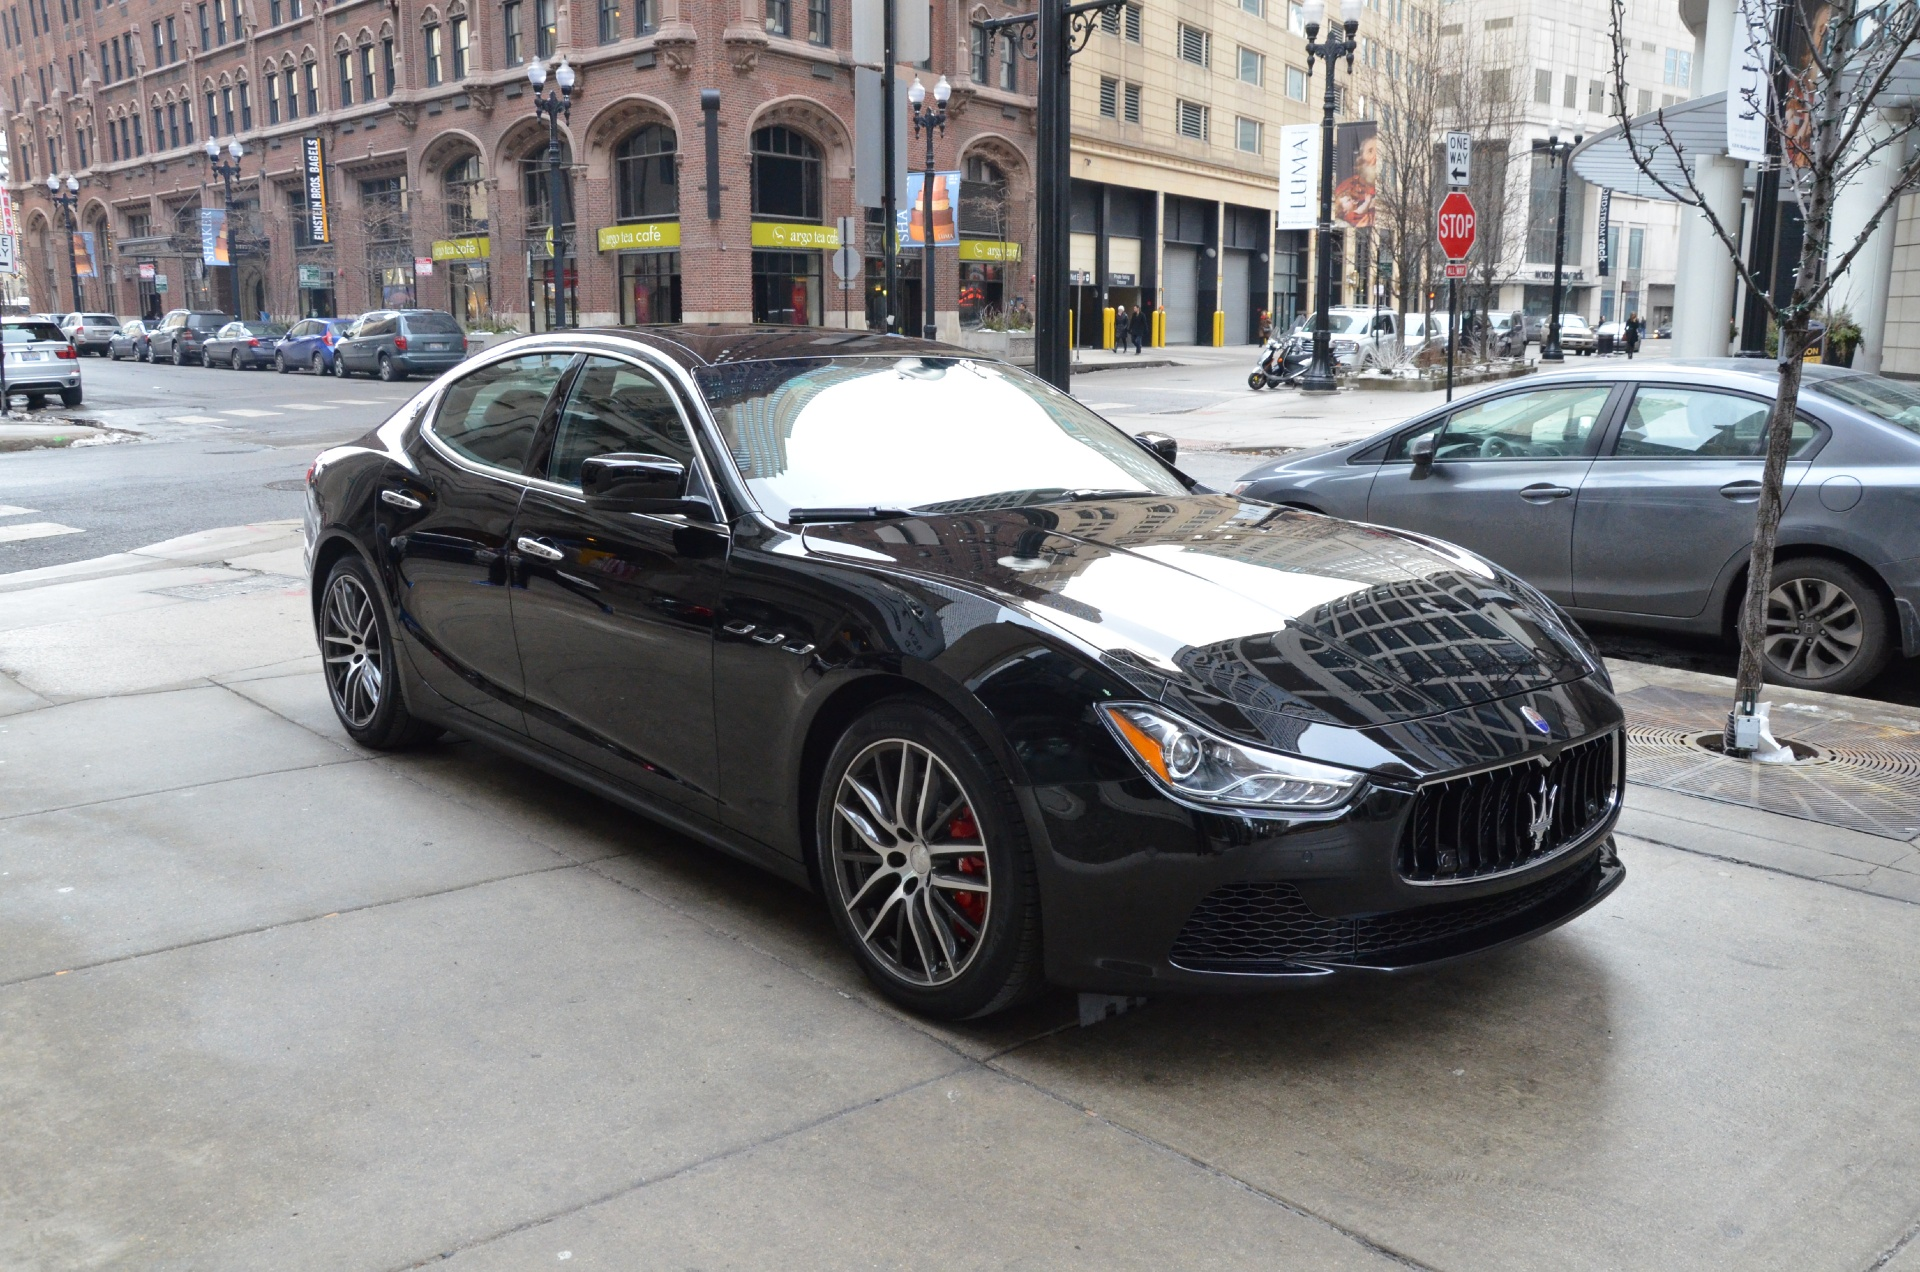 2015 maserati ghibli sq4 s q4 stock m413 for sale near. Black Bedroom Furniture Sets. Home Design Ideas